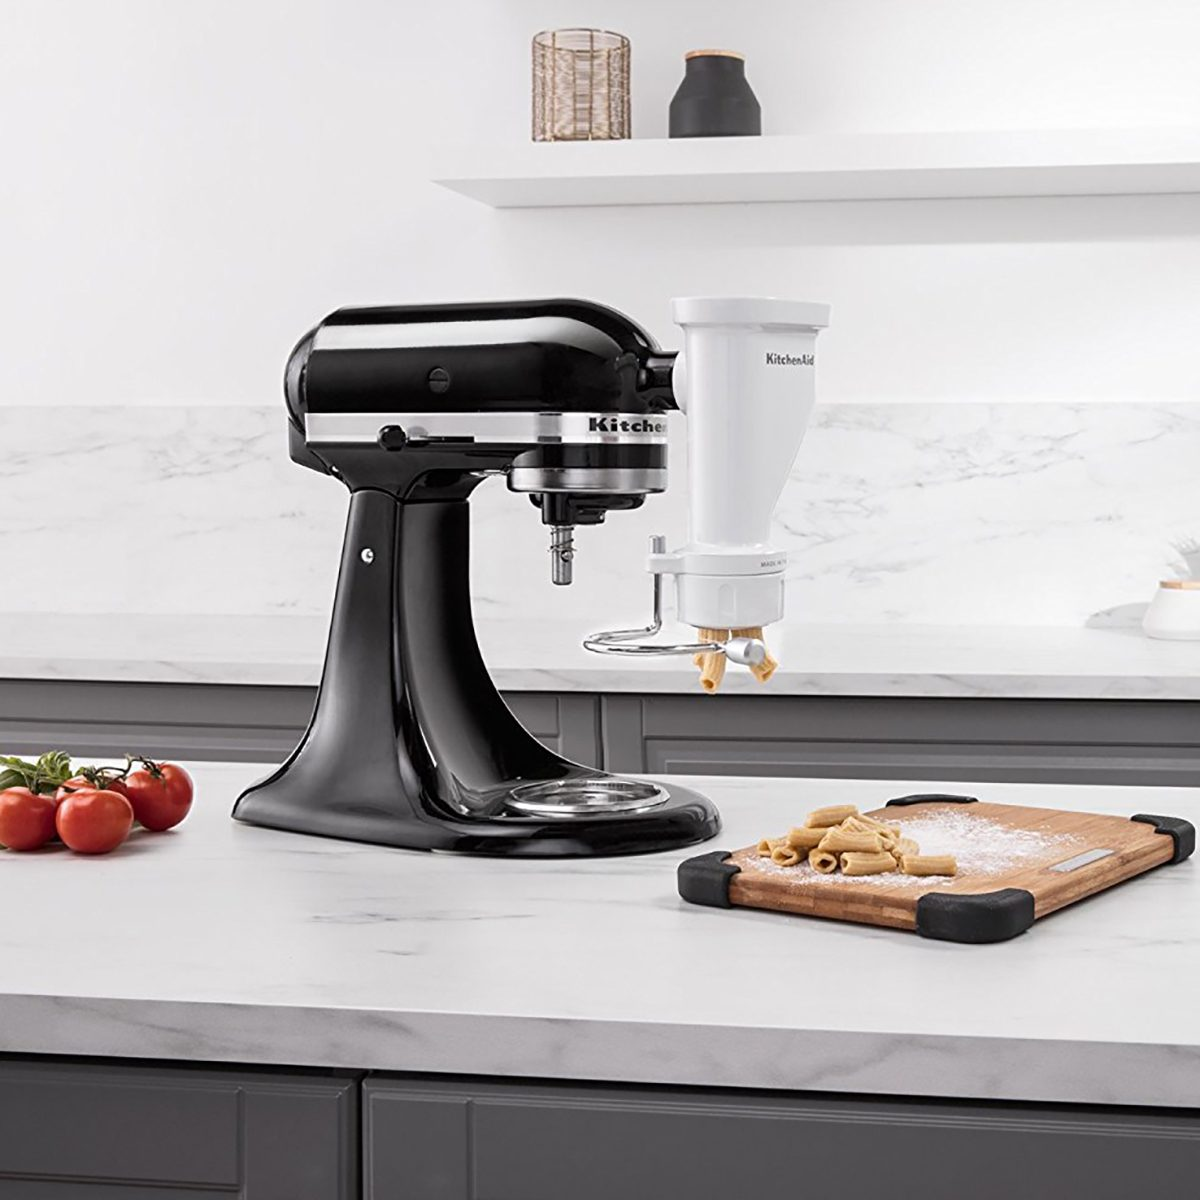 KitchenAid Pasta Press